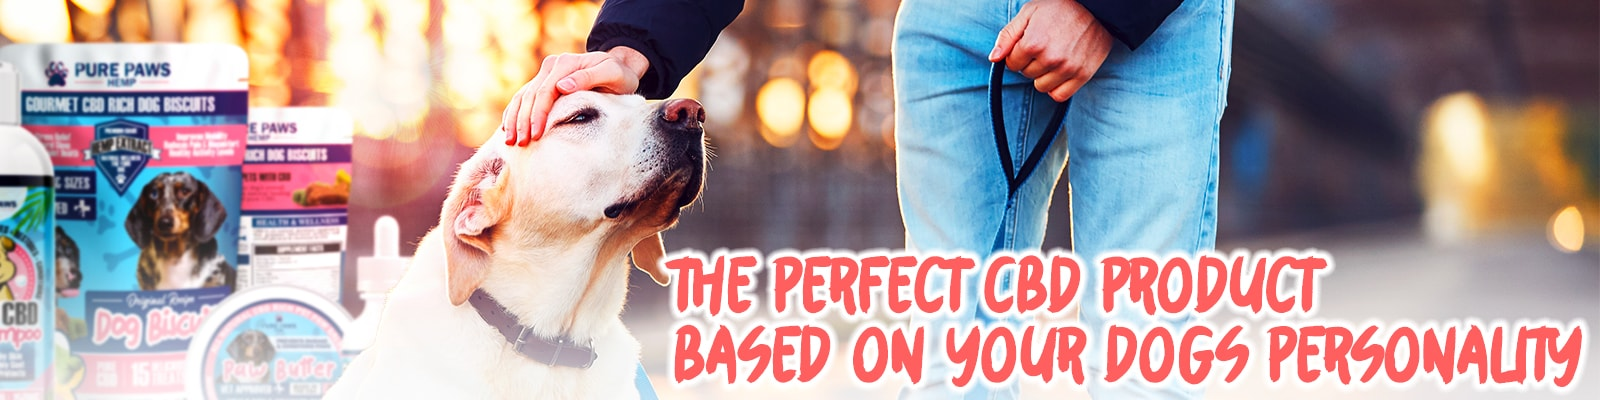 pure paws cbd bundle for your dog's personality